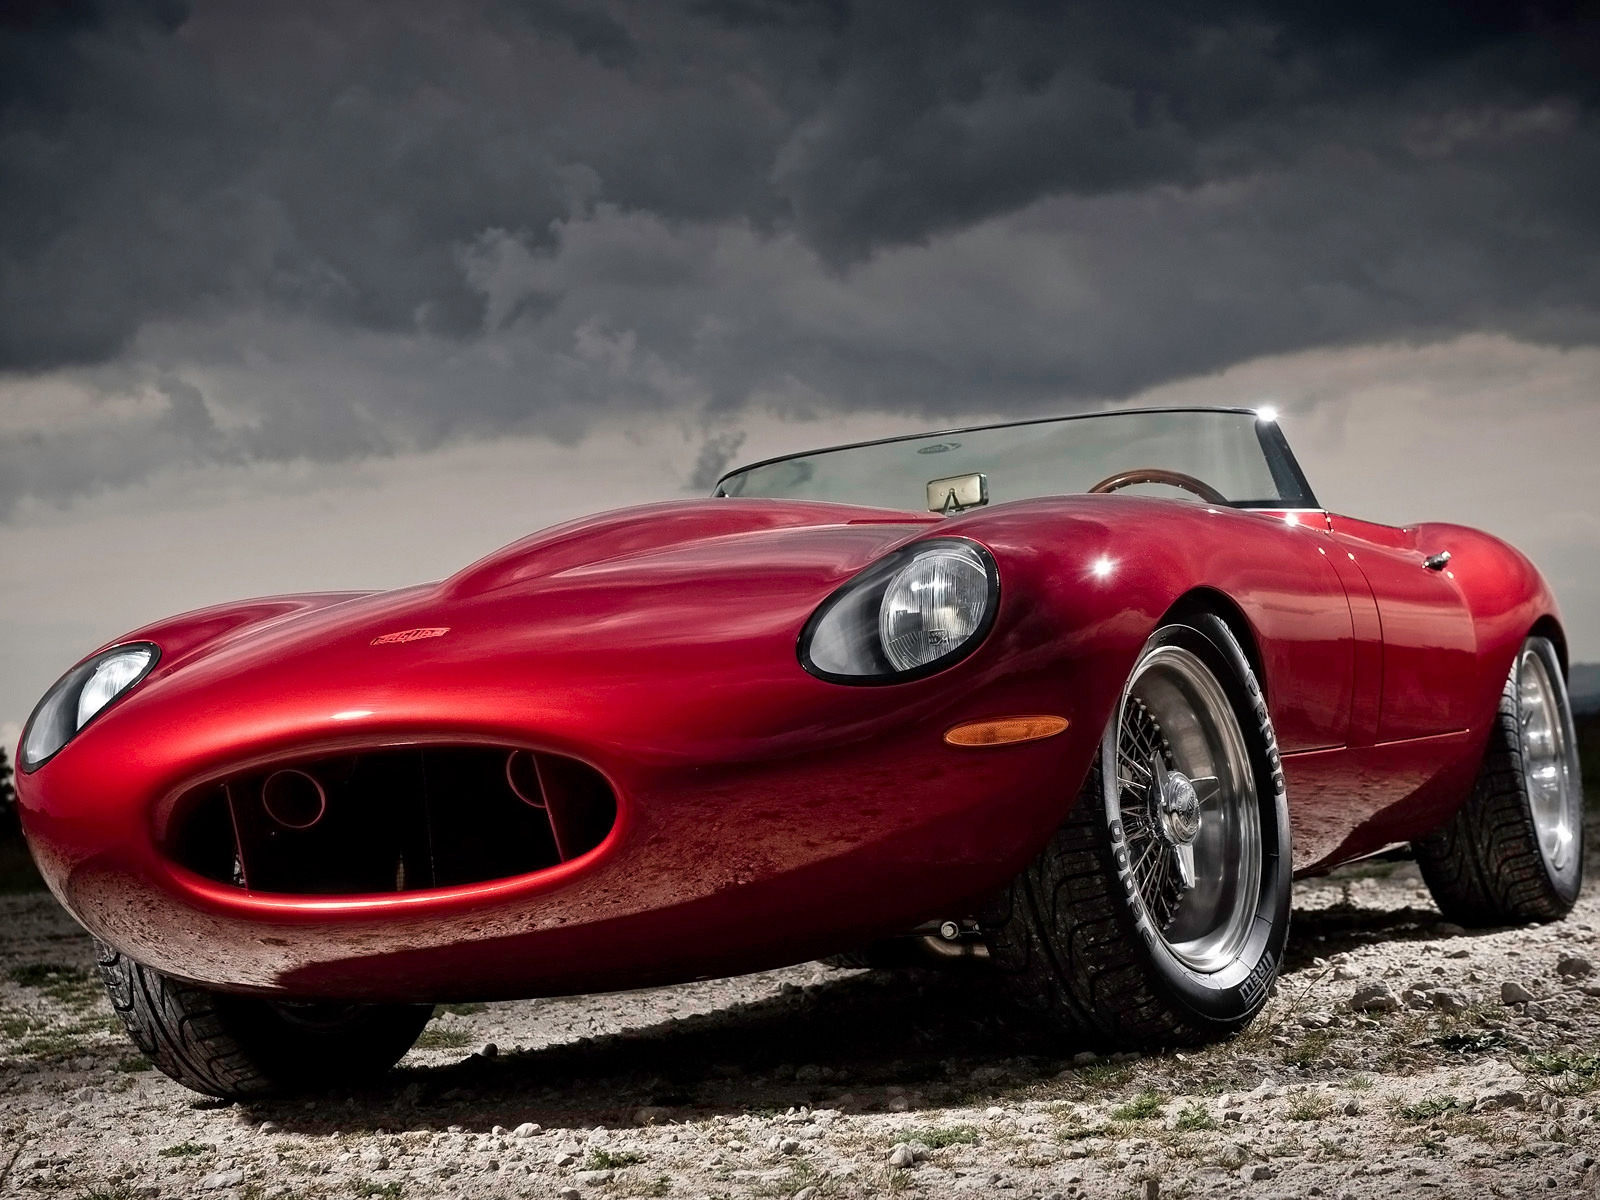 2011 Eagle Jaguar E Type Speedster for 1600 x 1200 resolution